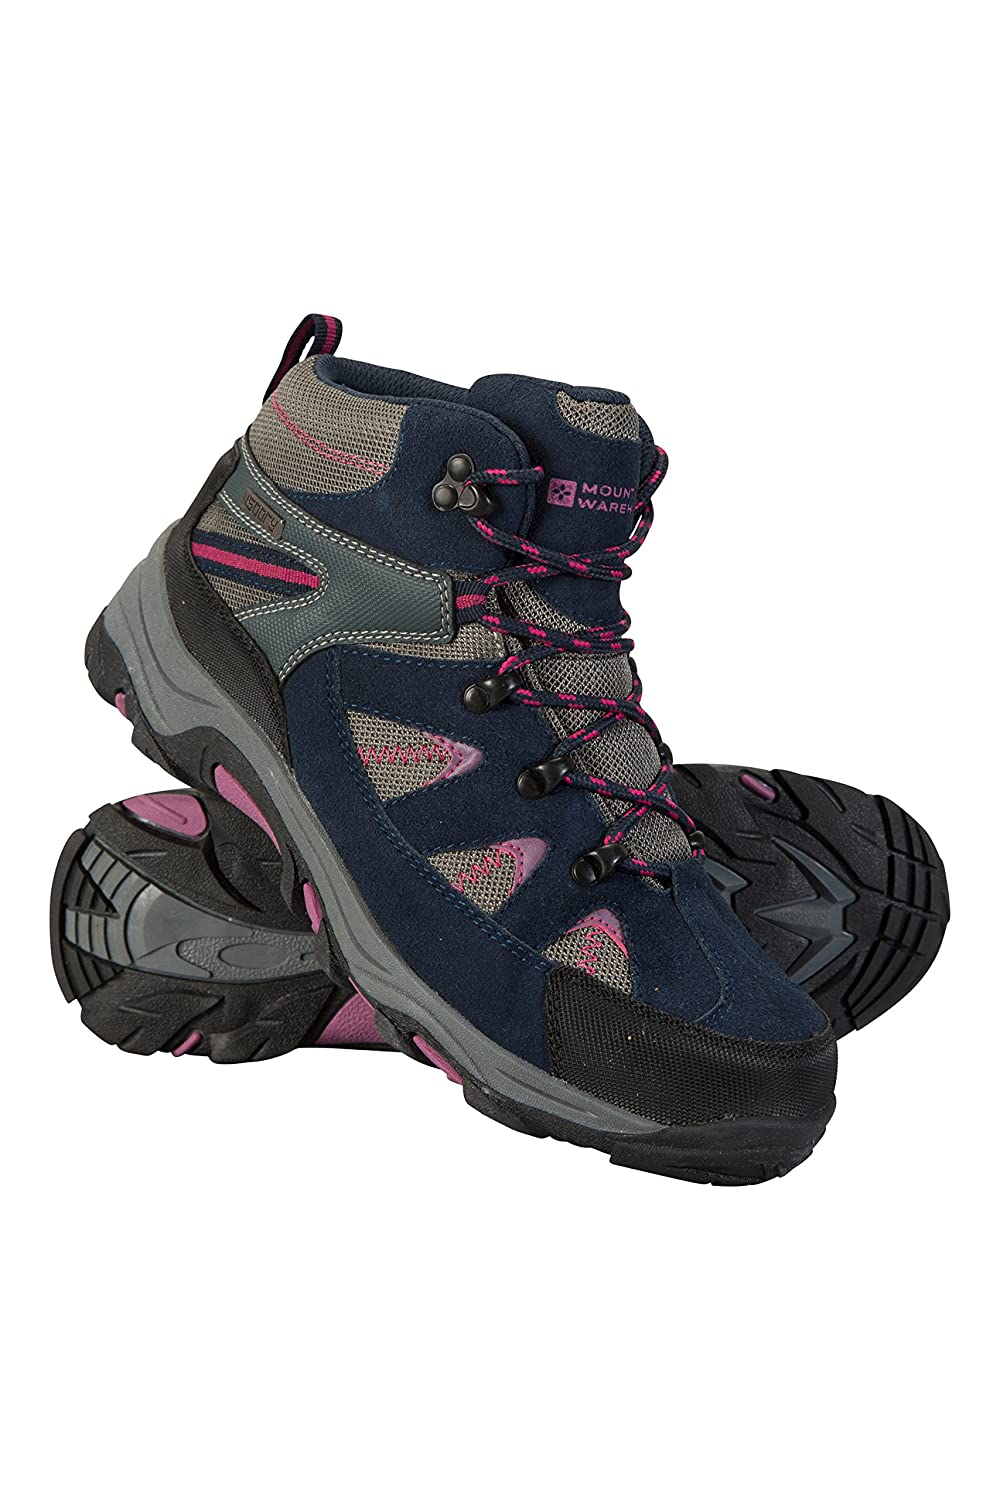 Mountain Warehouse Rapid Womens Boots Waterproof Summer Walking Shoes